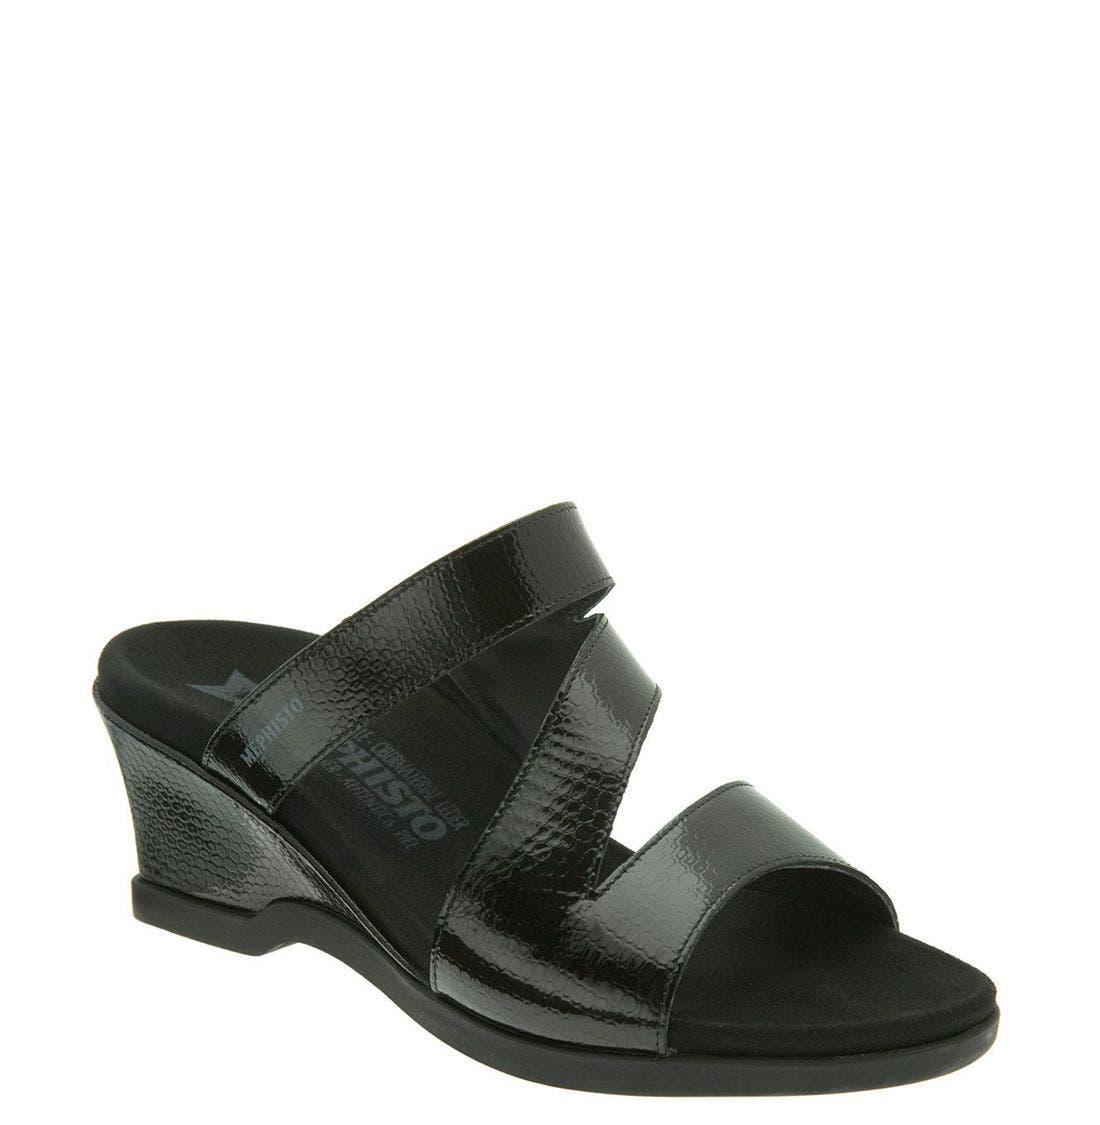 MEPHISTO,                             'Cathy' Wedge,                             Main thumbnail 1, color,                             BLK